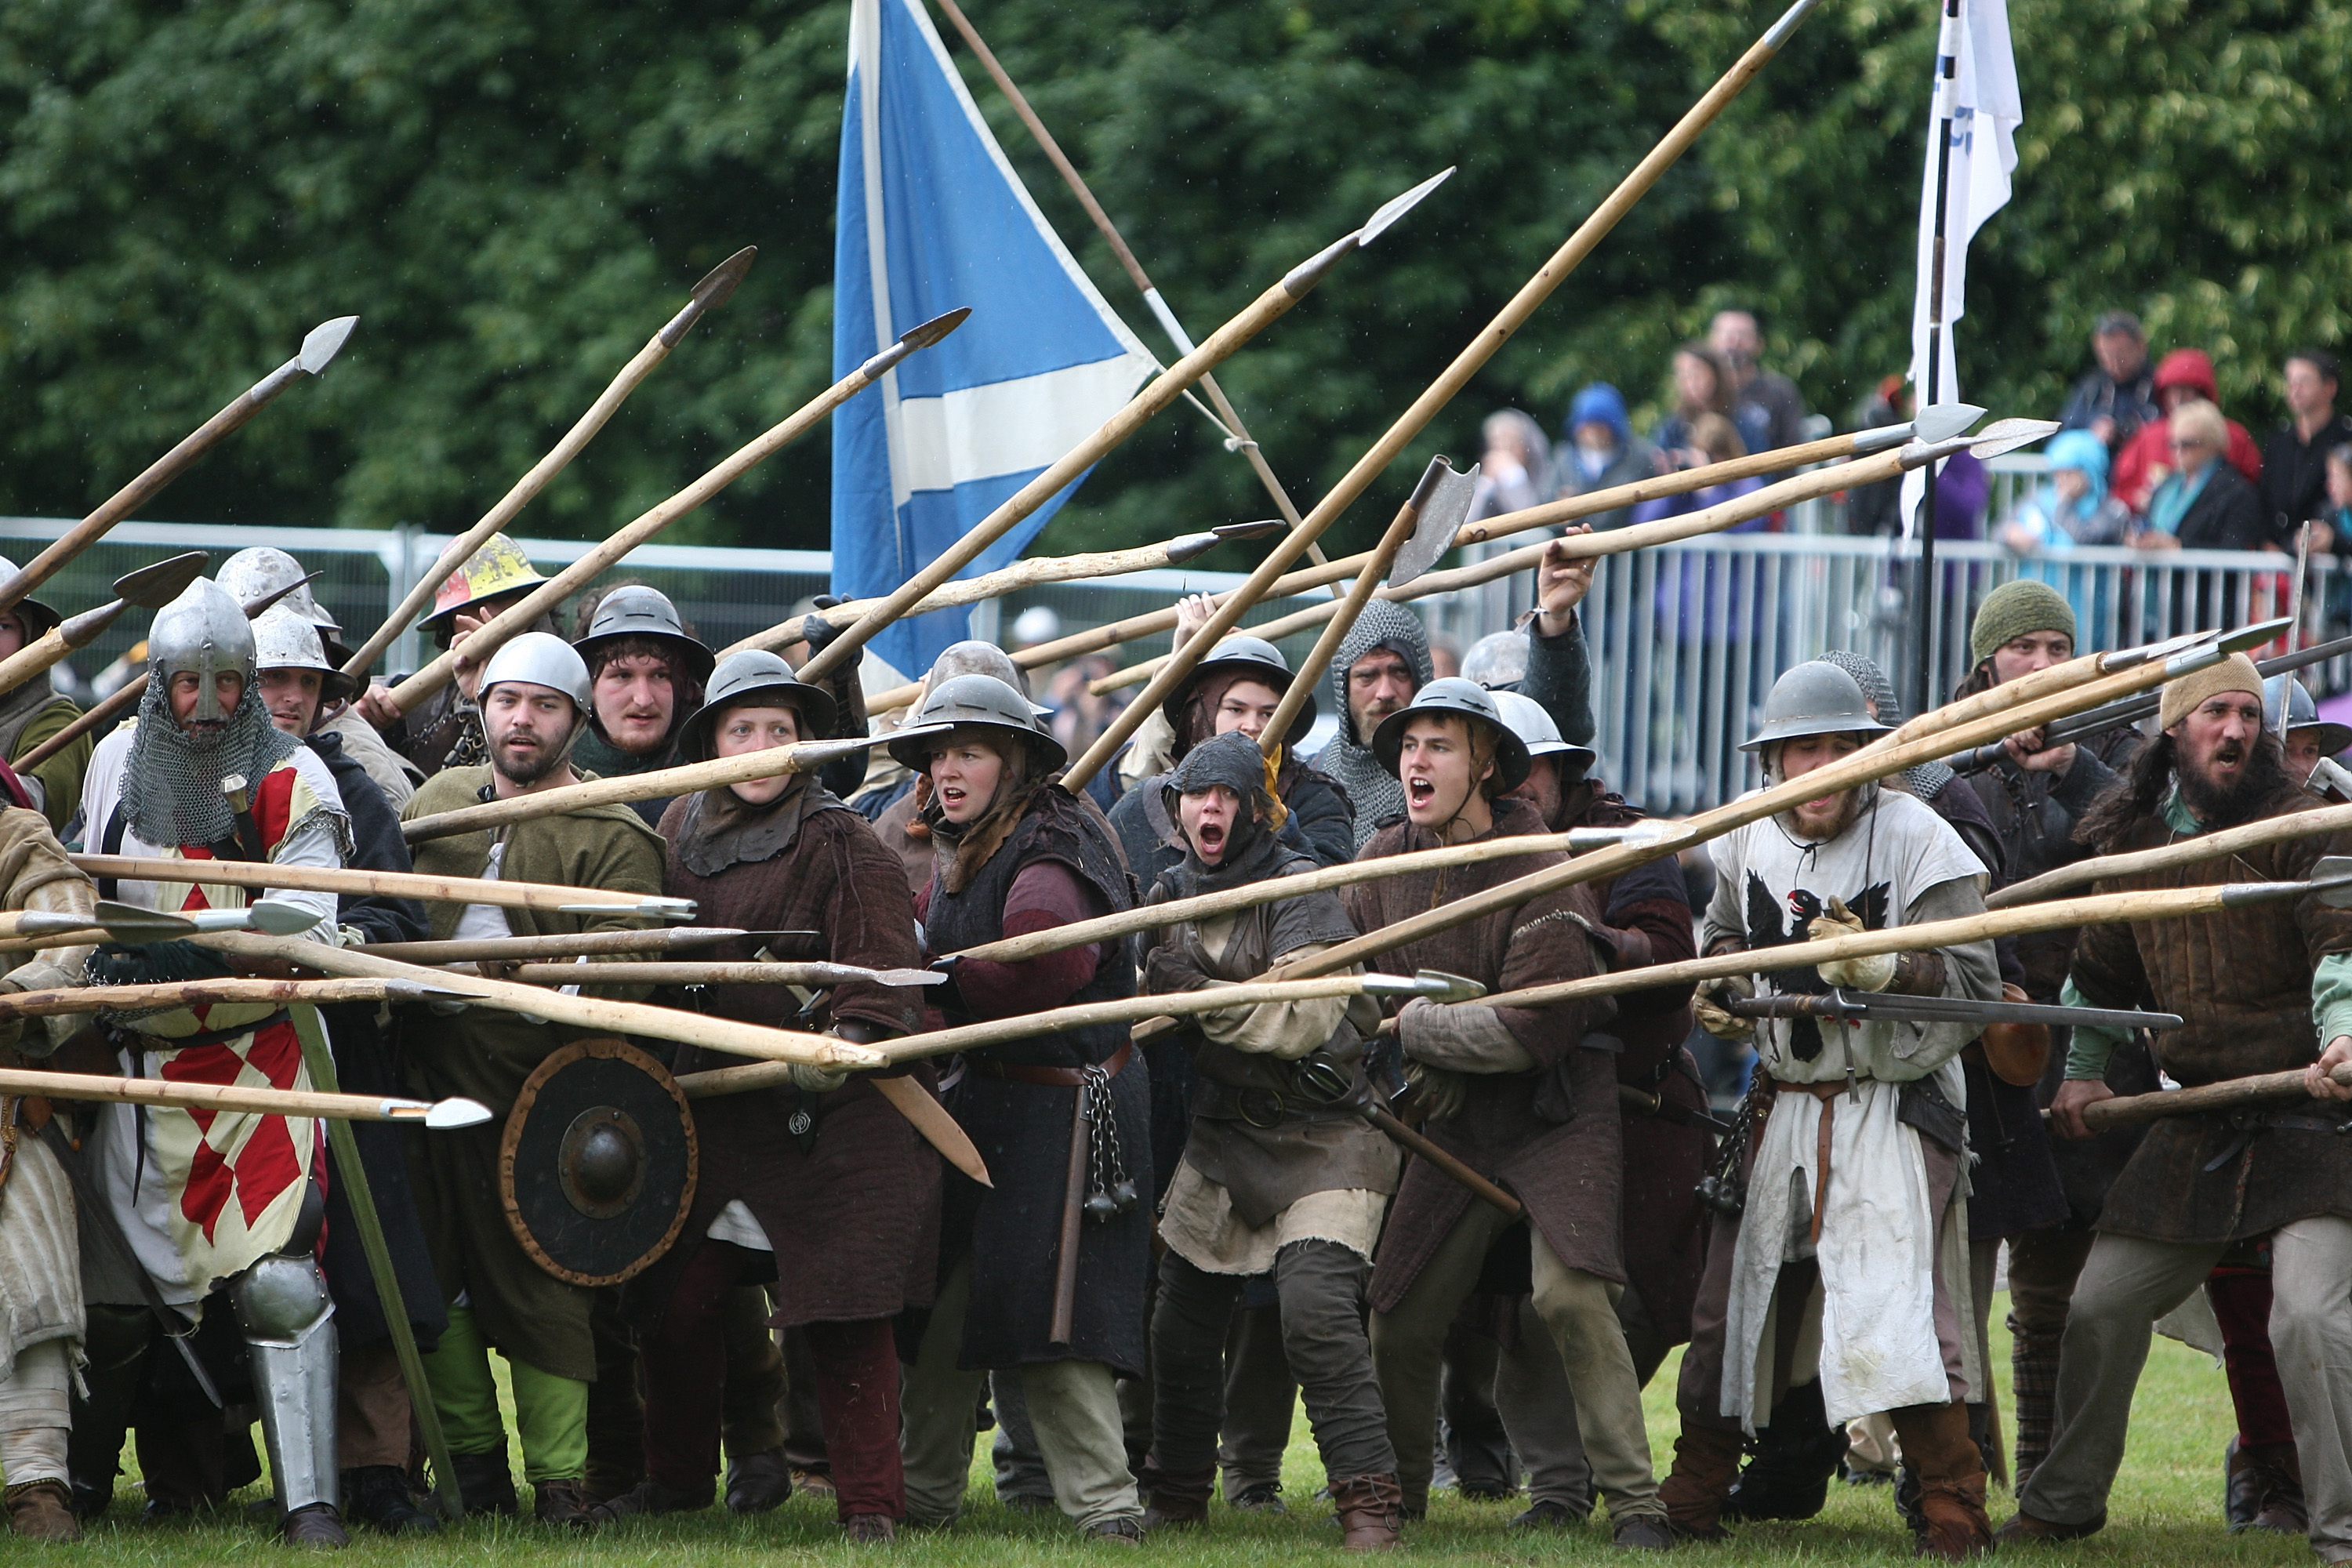 700th Anniversary Of The Battle Of Bannockburn